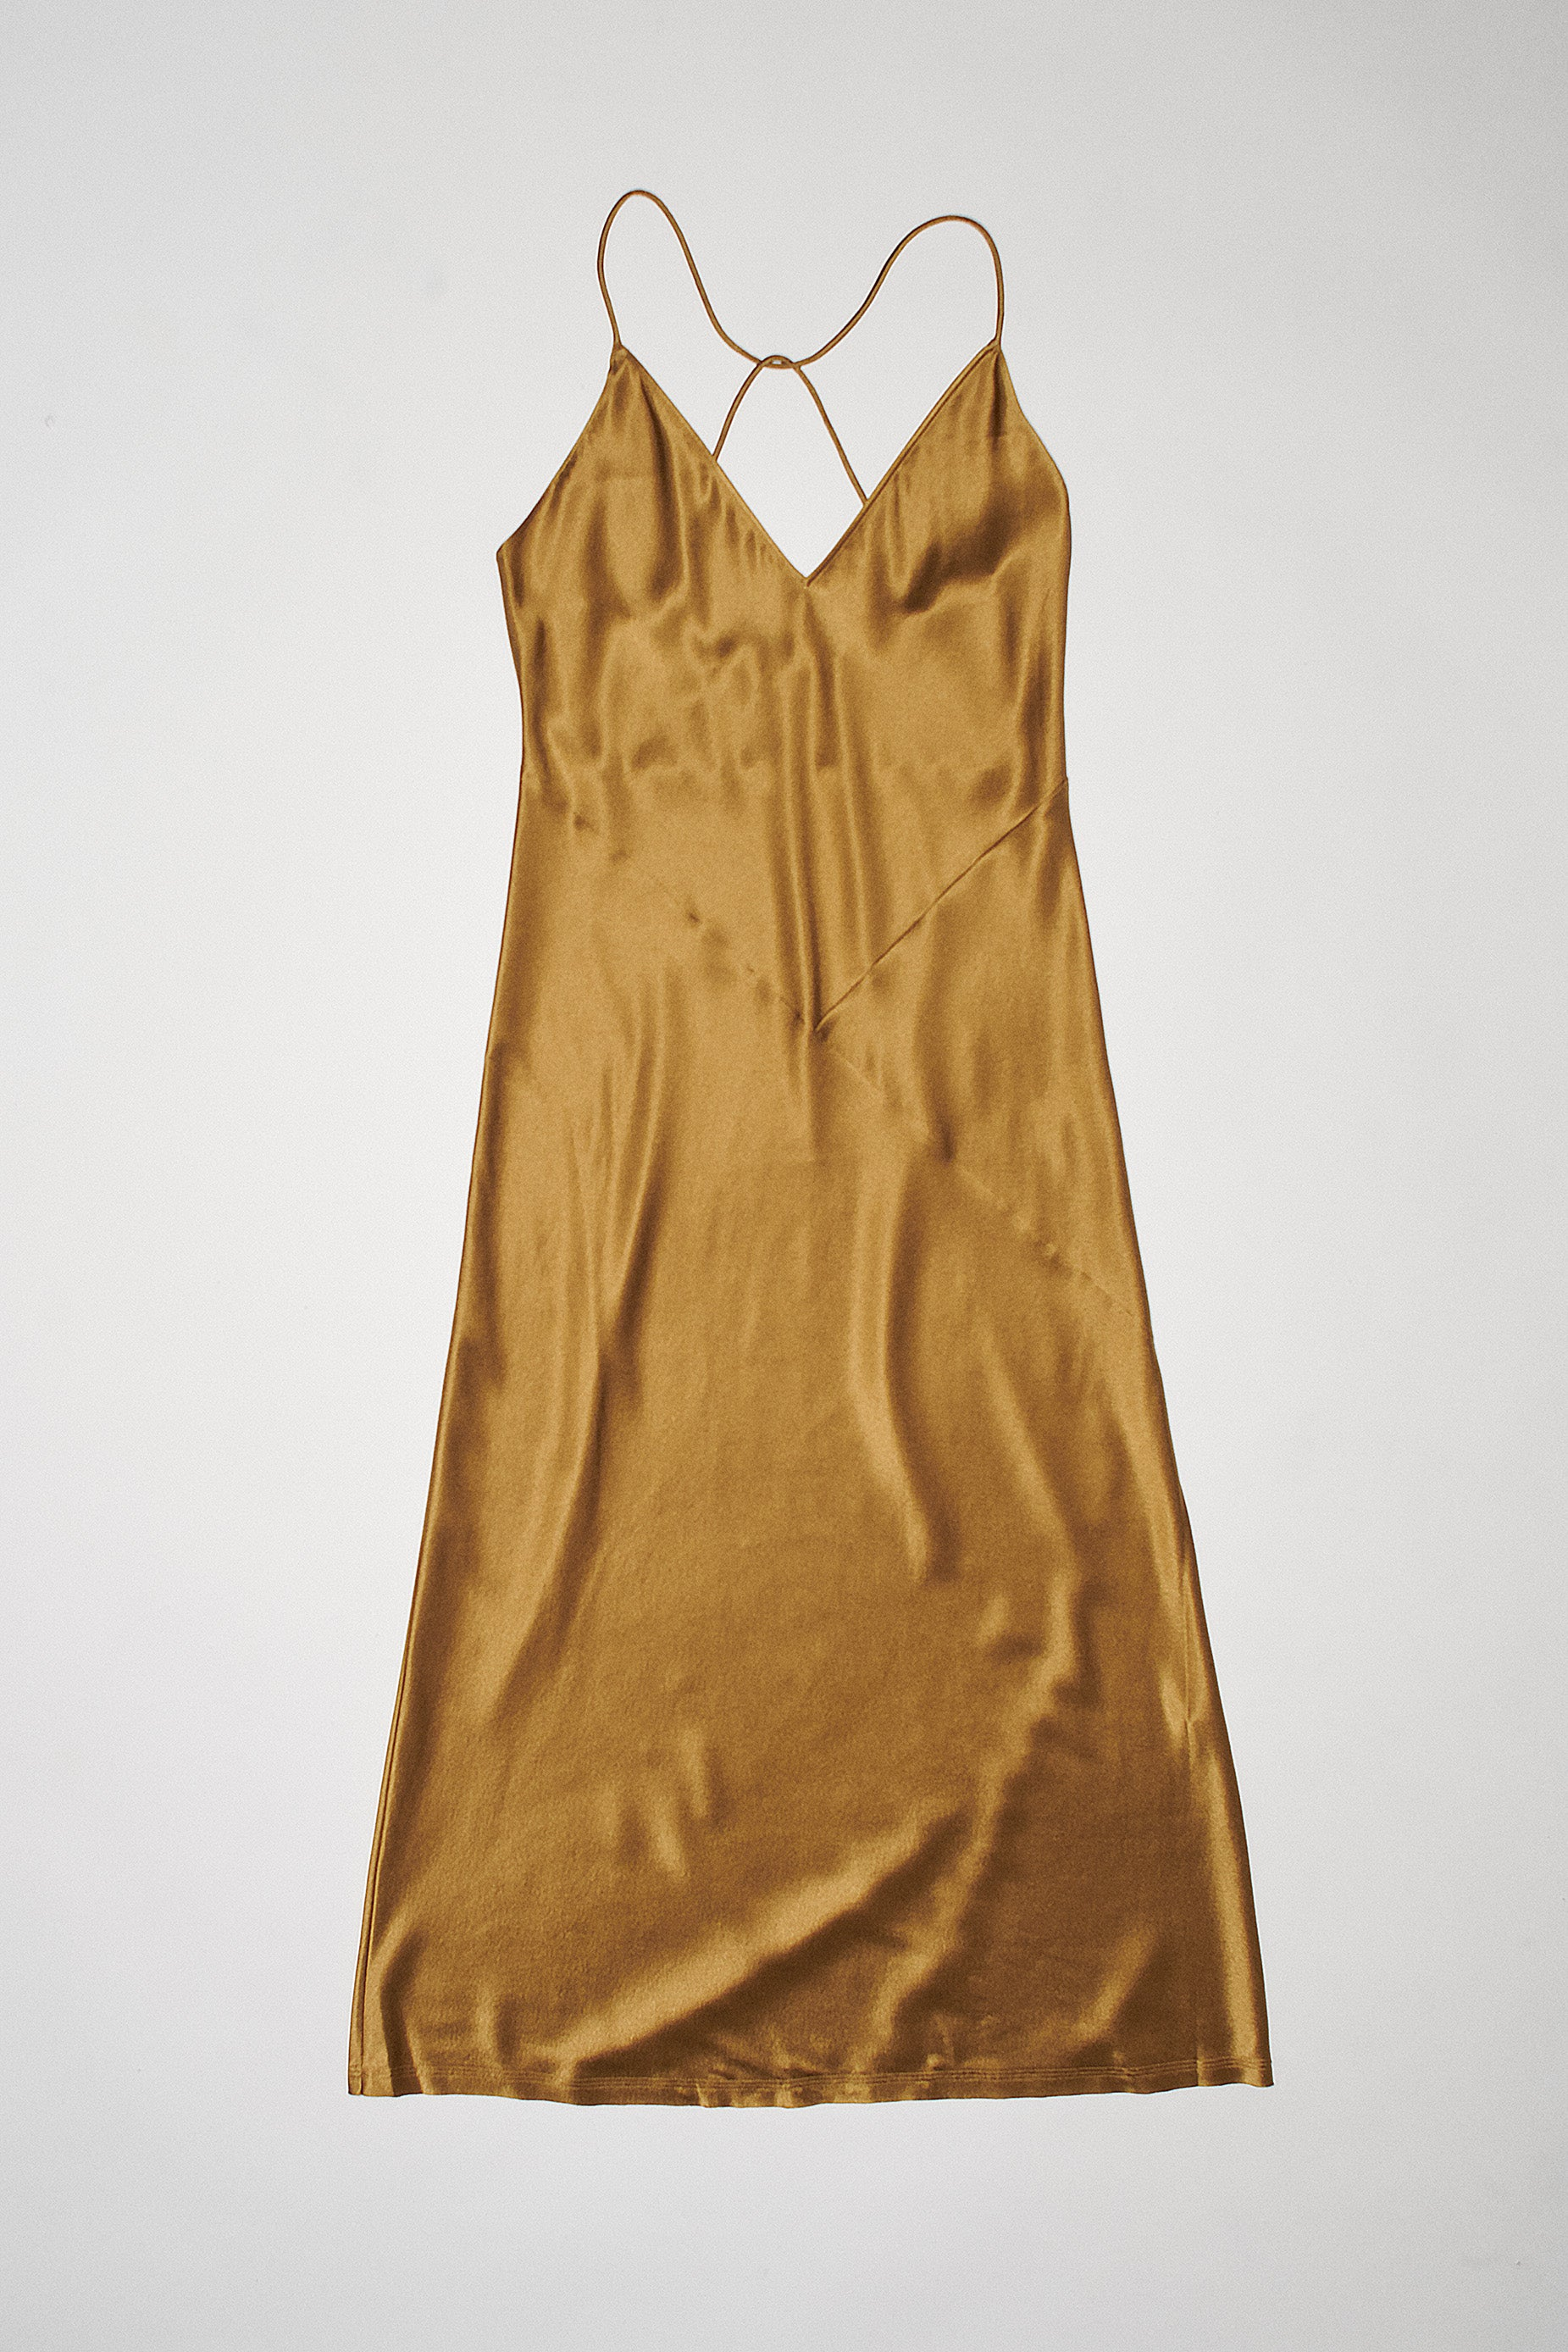 Maria Slipdress